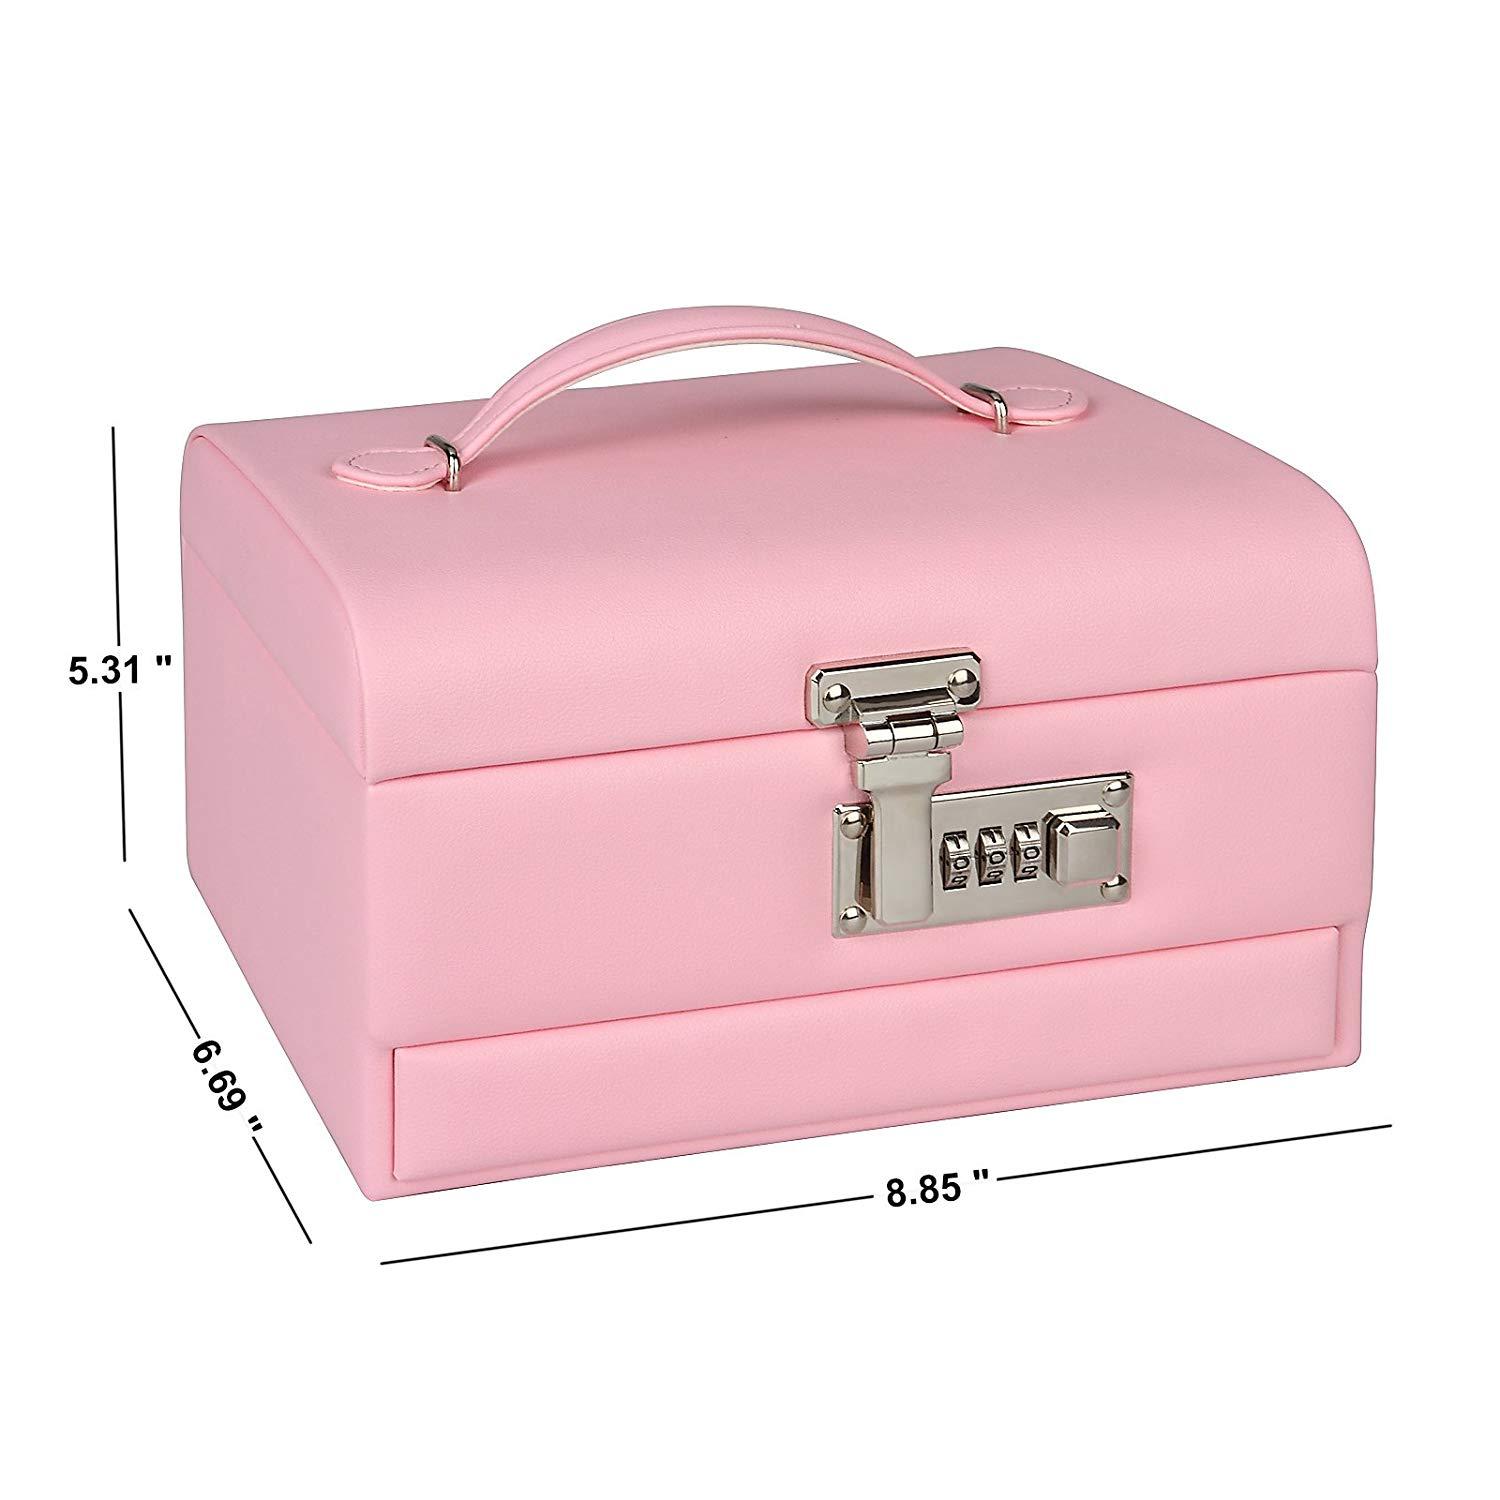 Leather Jewelry Storage And Organizer Box For Girls With Lock